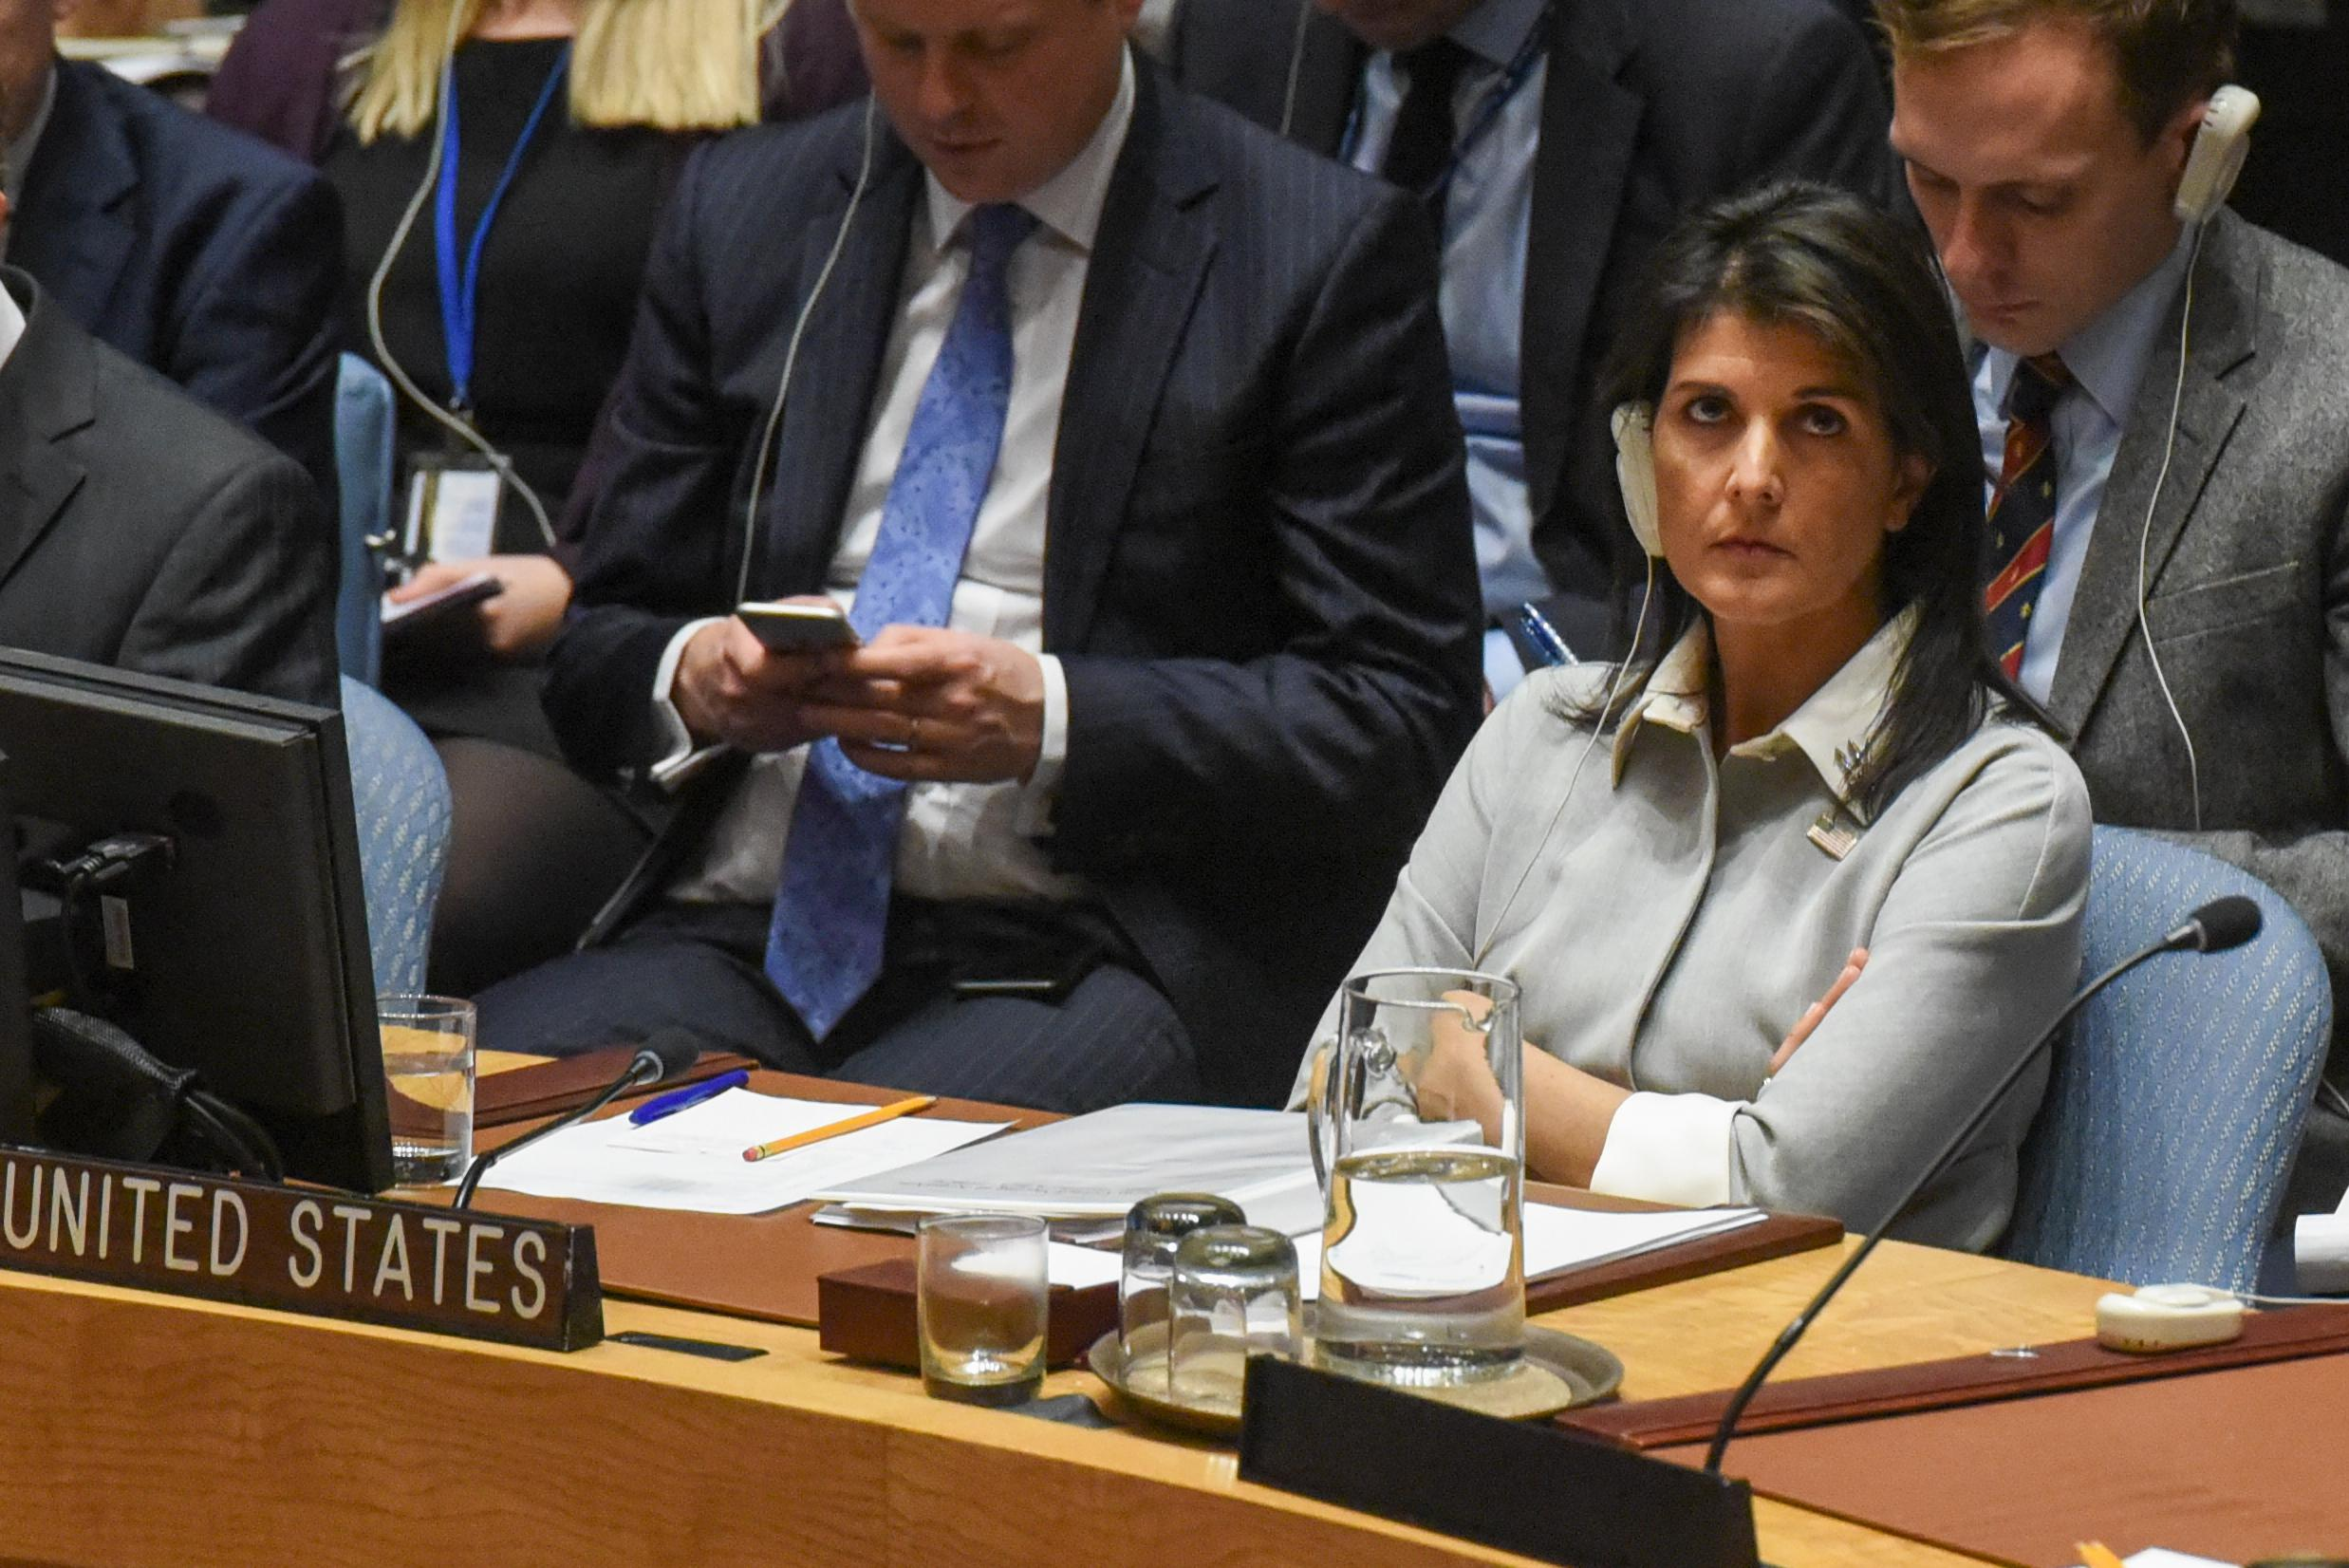 U.S. Ambassador to the United Nations Nikki Haley listens to a speech during a United Nations Security Council meeting on the situation in Palestine at the United Nations headquarters on December 8, 2017 in New York City. Deadly clashes broke out in Jerusalem and the West Bank after US President Donald Trump's decision to recognize Jerusalem as the capital of Israel.